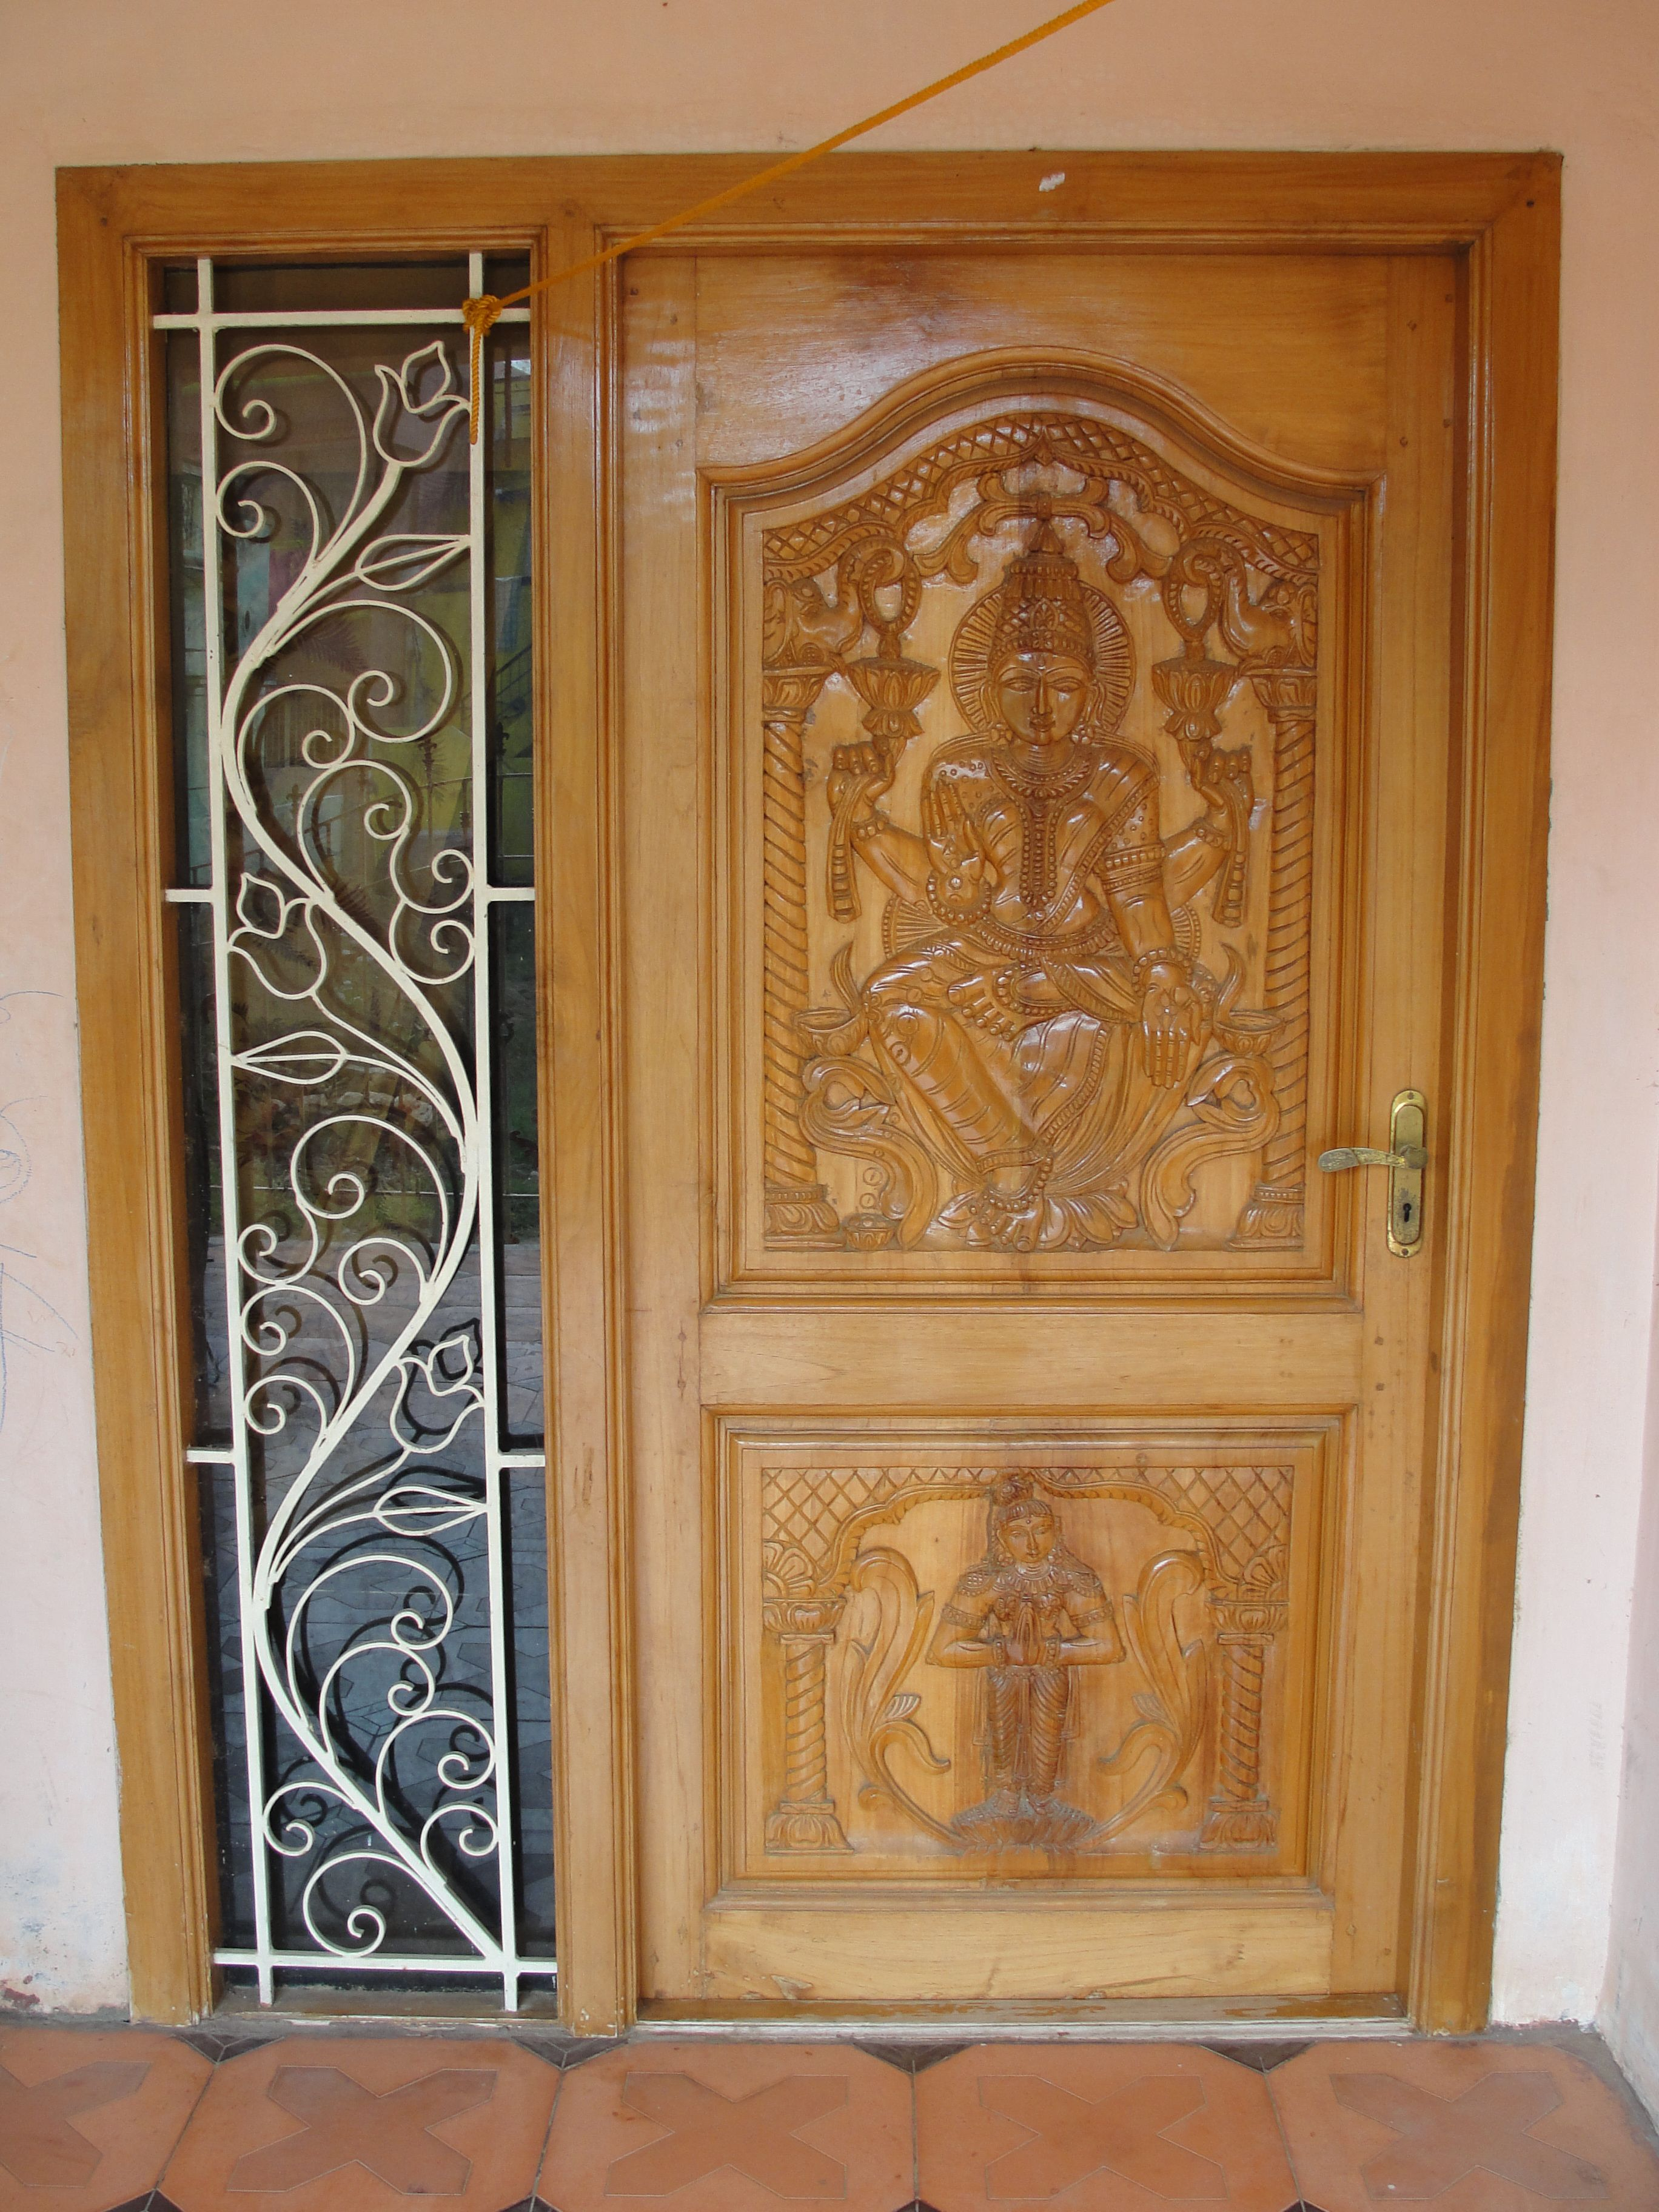 Filean Ornamental Door In Tamil Nadujpg Wikimedia Mons ...